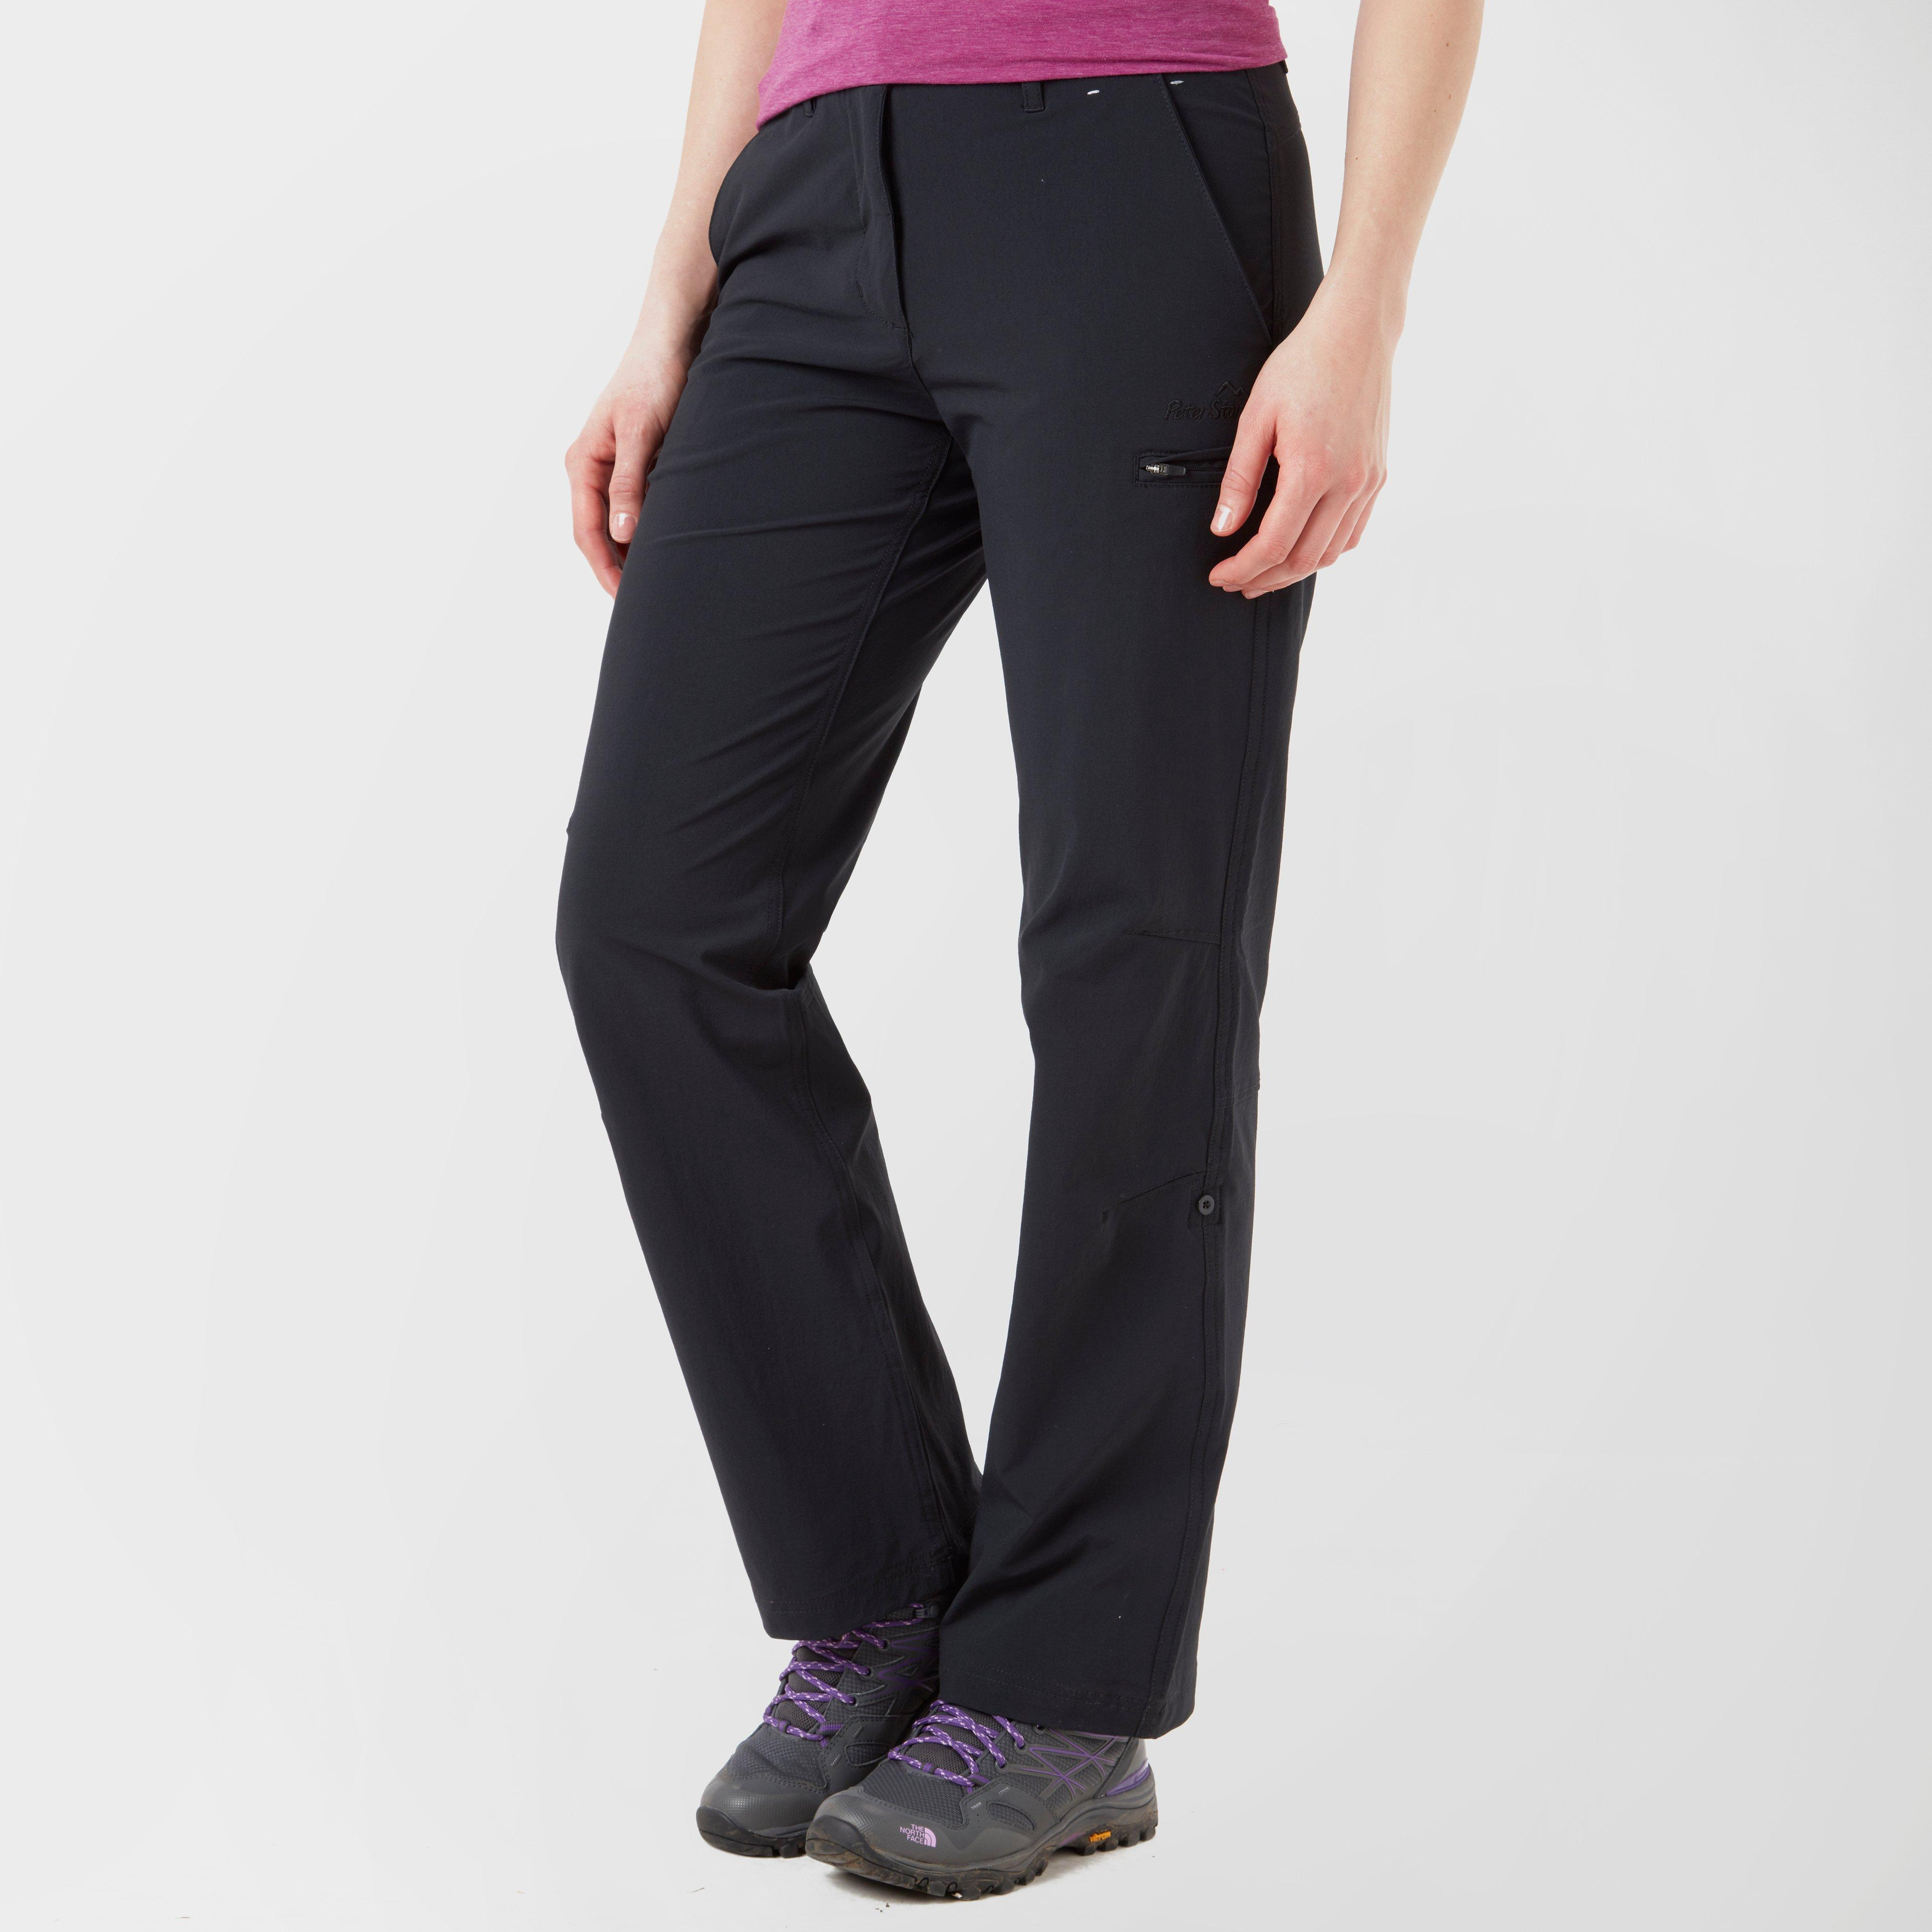 Peter Storm Peter Storm womens Hike Stretch Roll-Up Pant - Black, Black